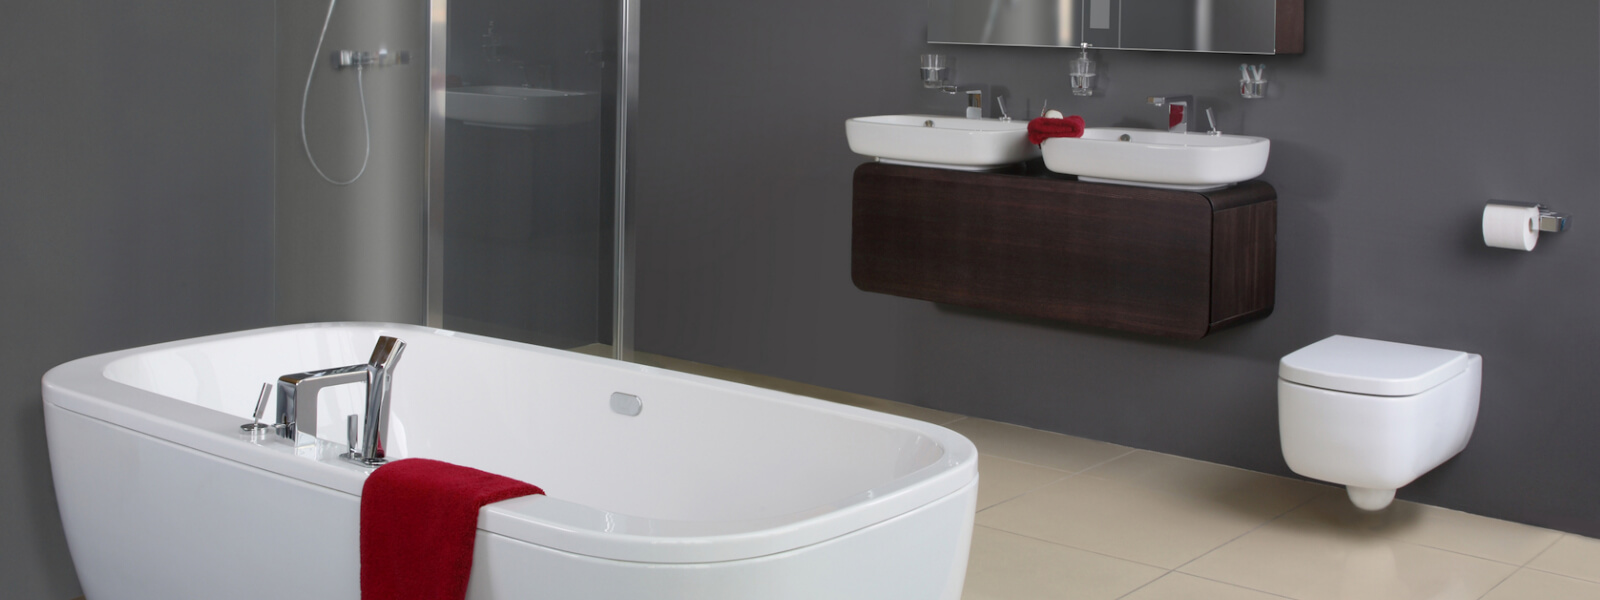 Your First Choice for Bathrooms